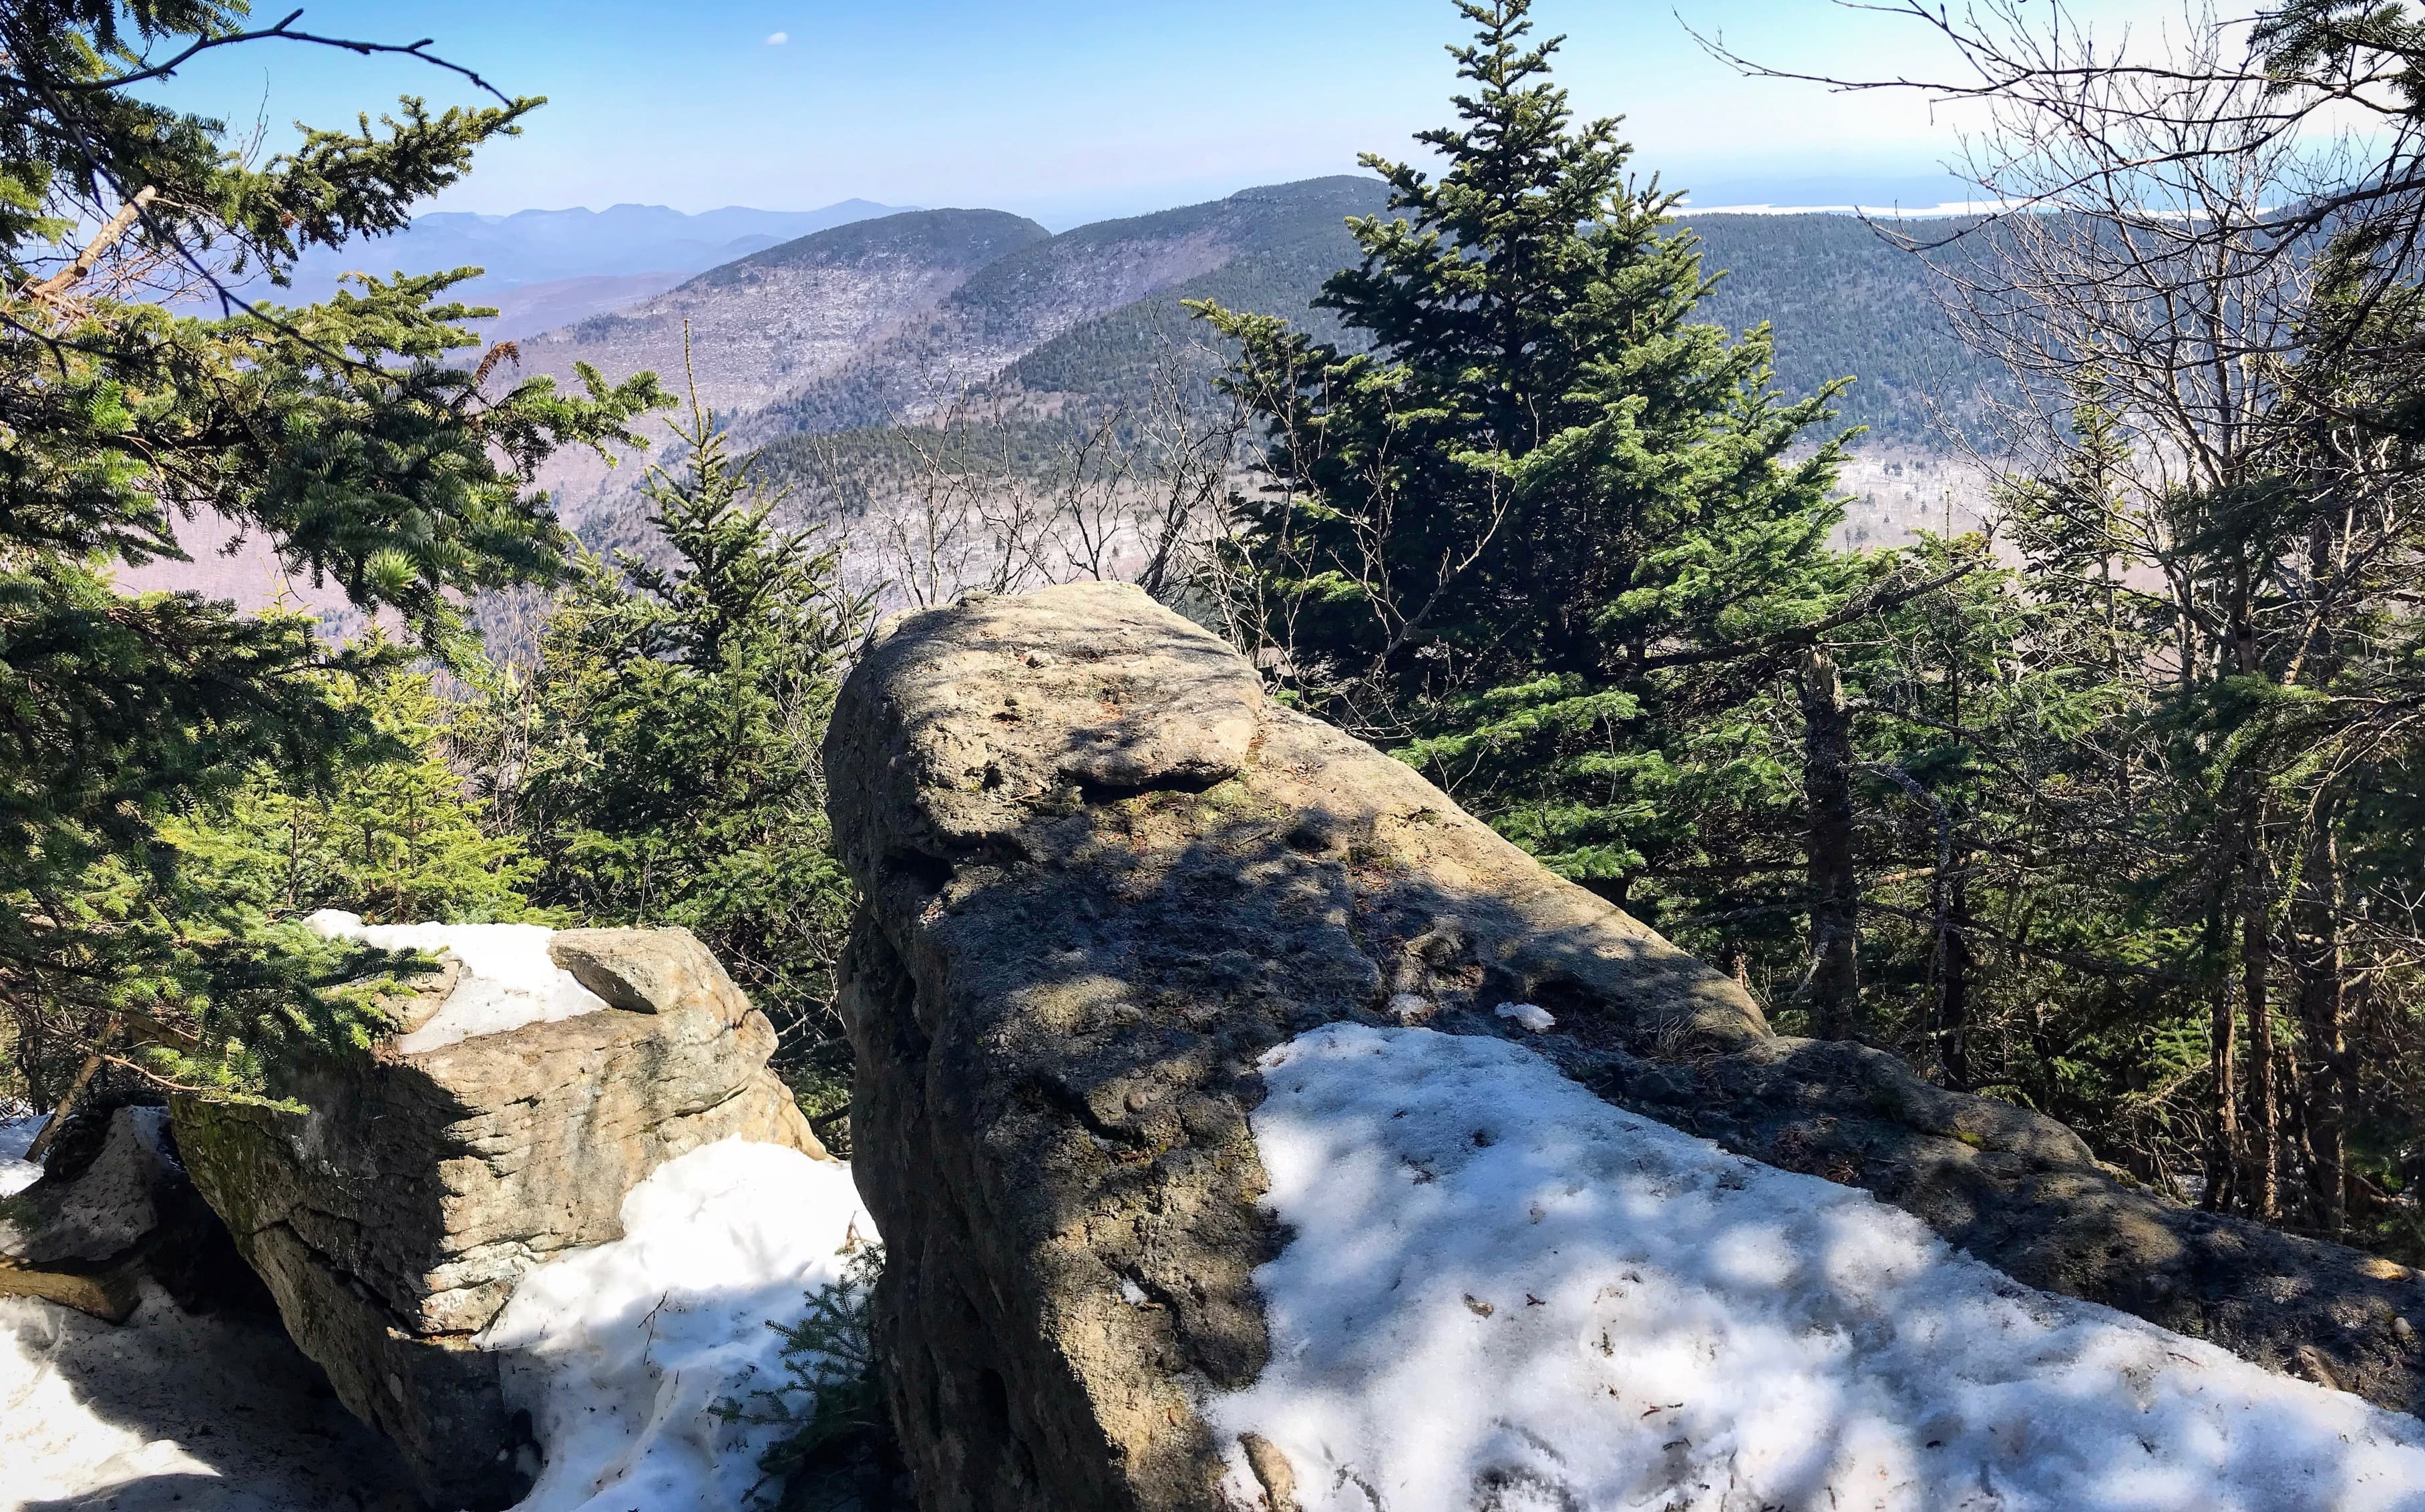 View from Slide Mountain